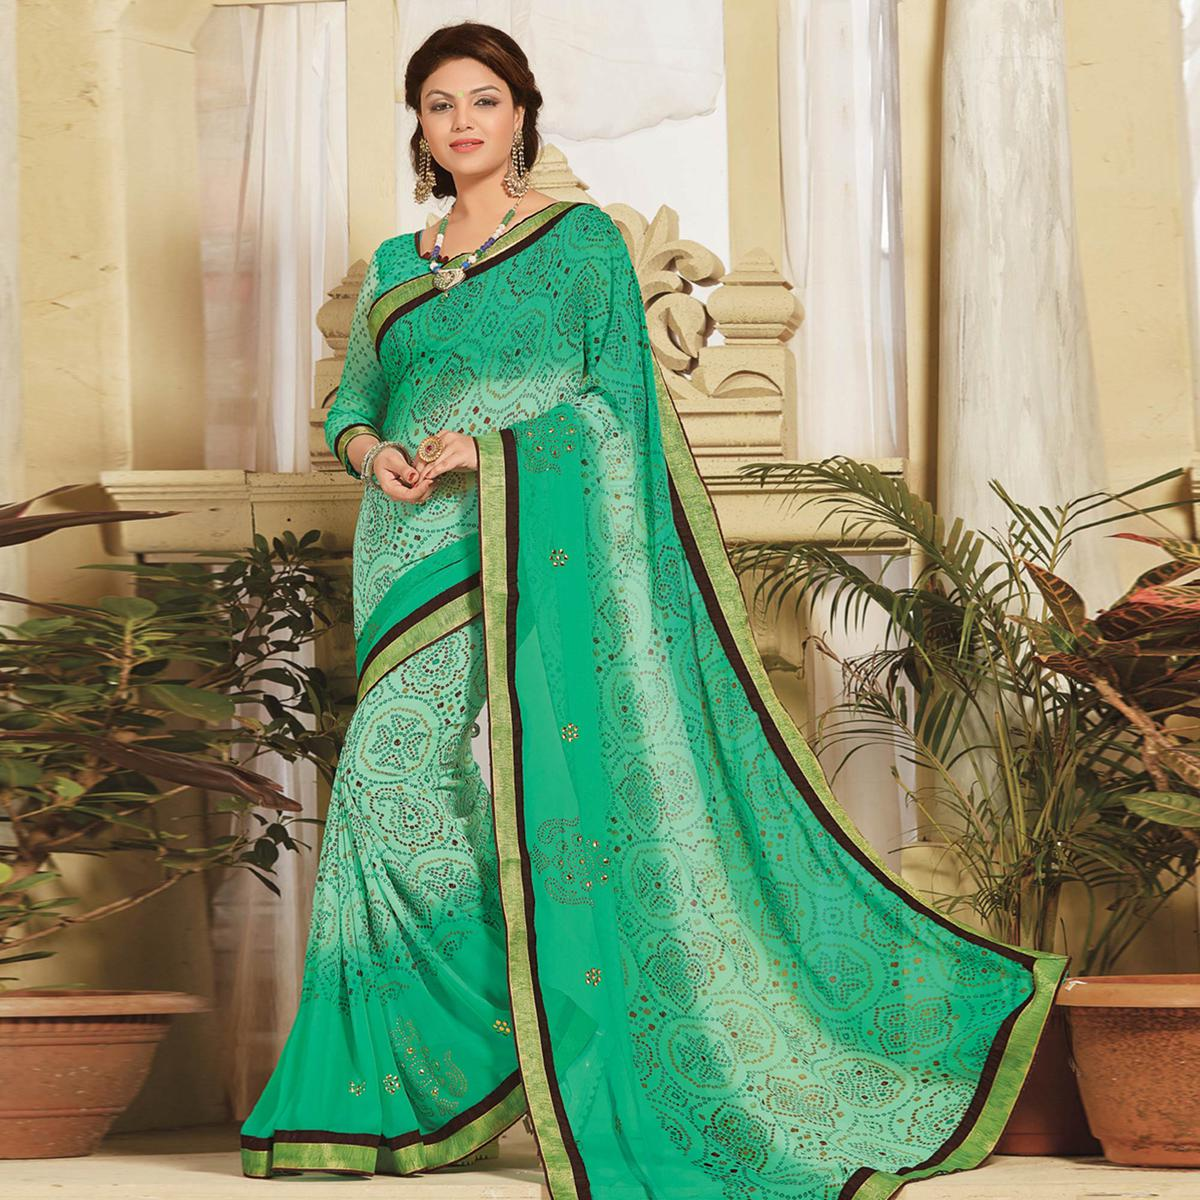 Eye-catching Green Colored Lace Border Work Printed Casual Wear Georgette Saree